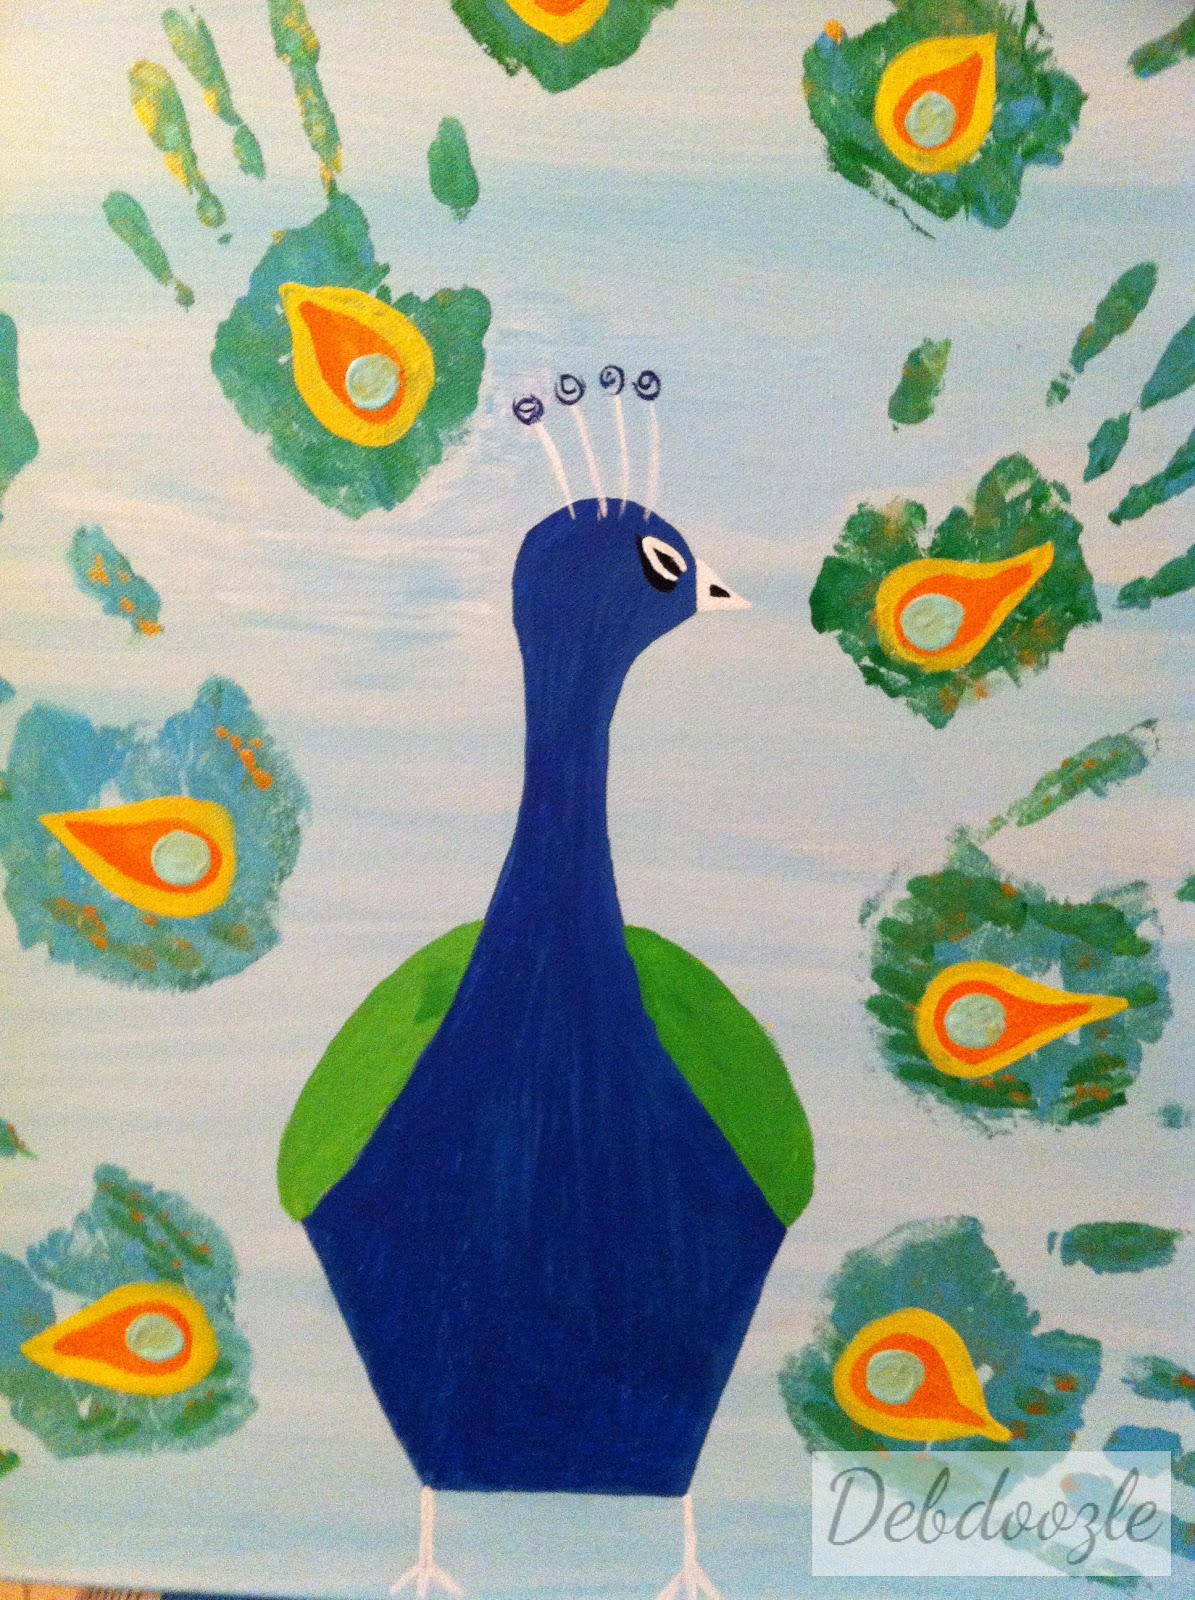 debdoozle  hands down  family hand prints peacock painting